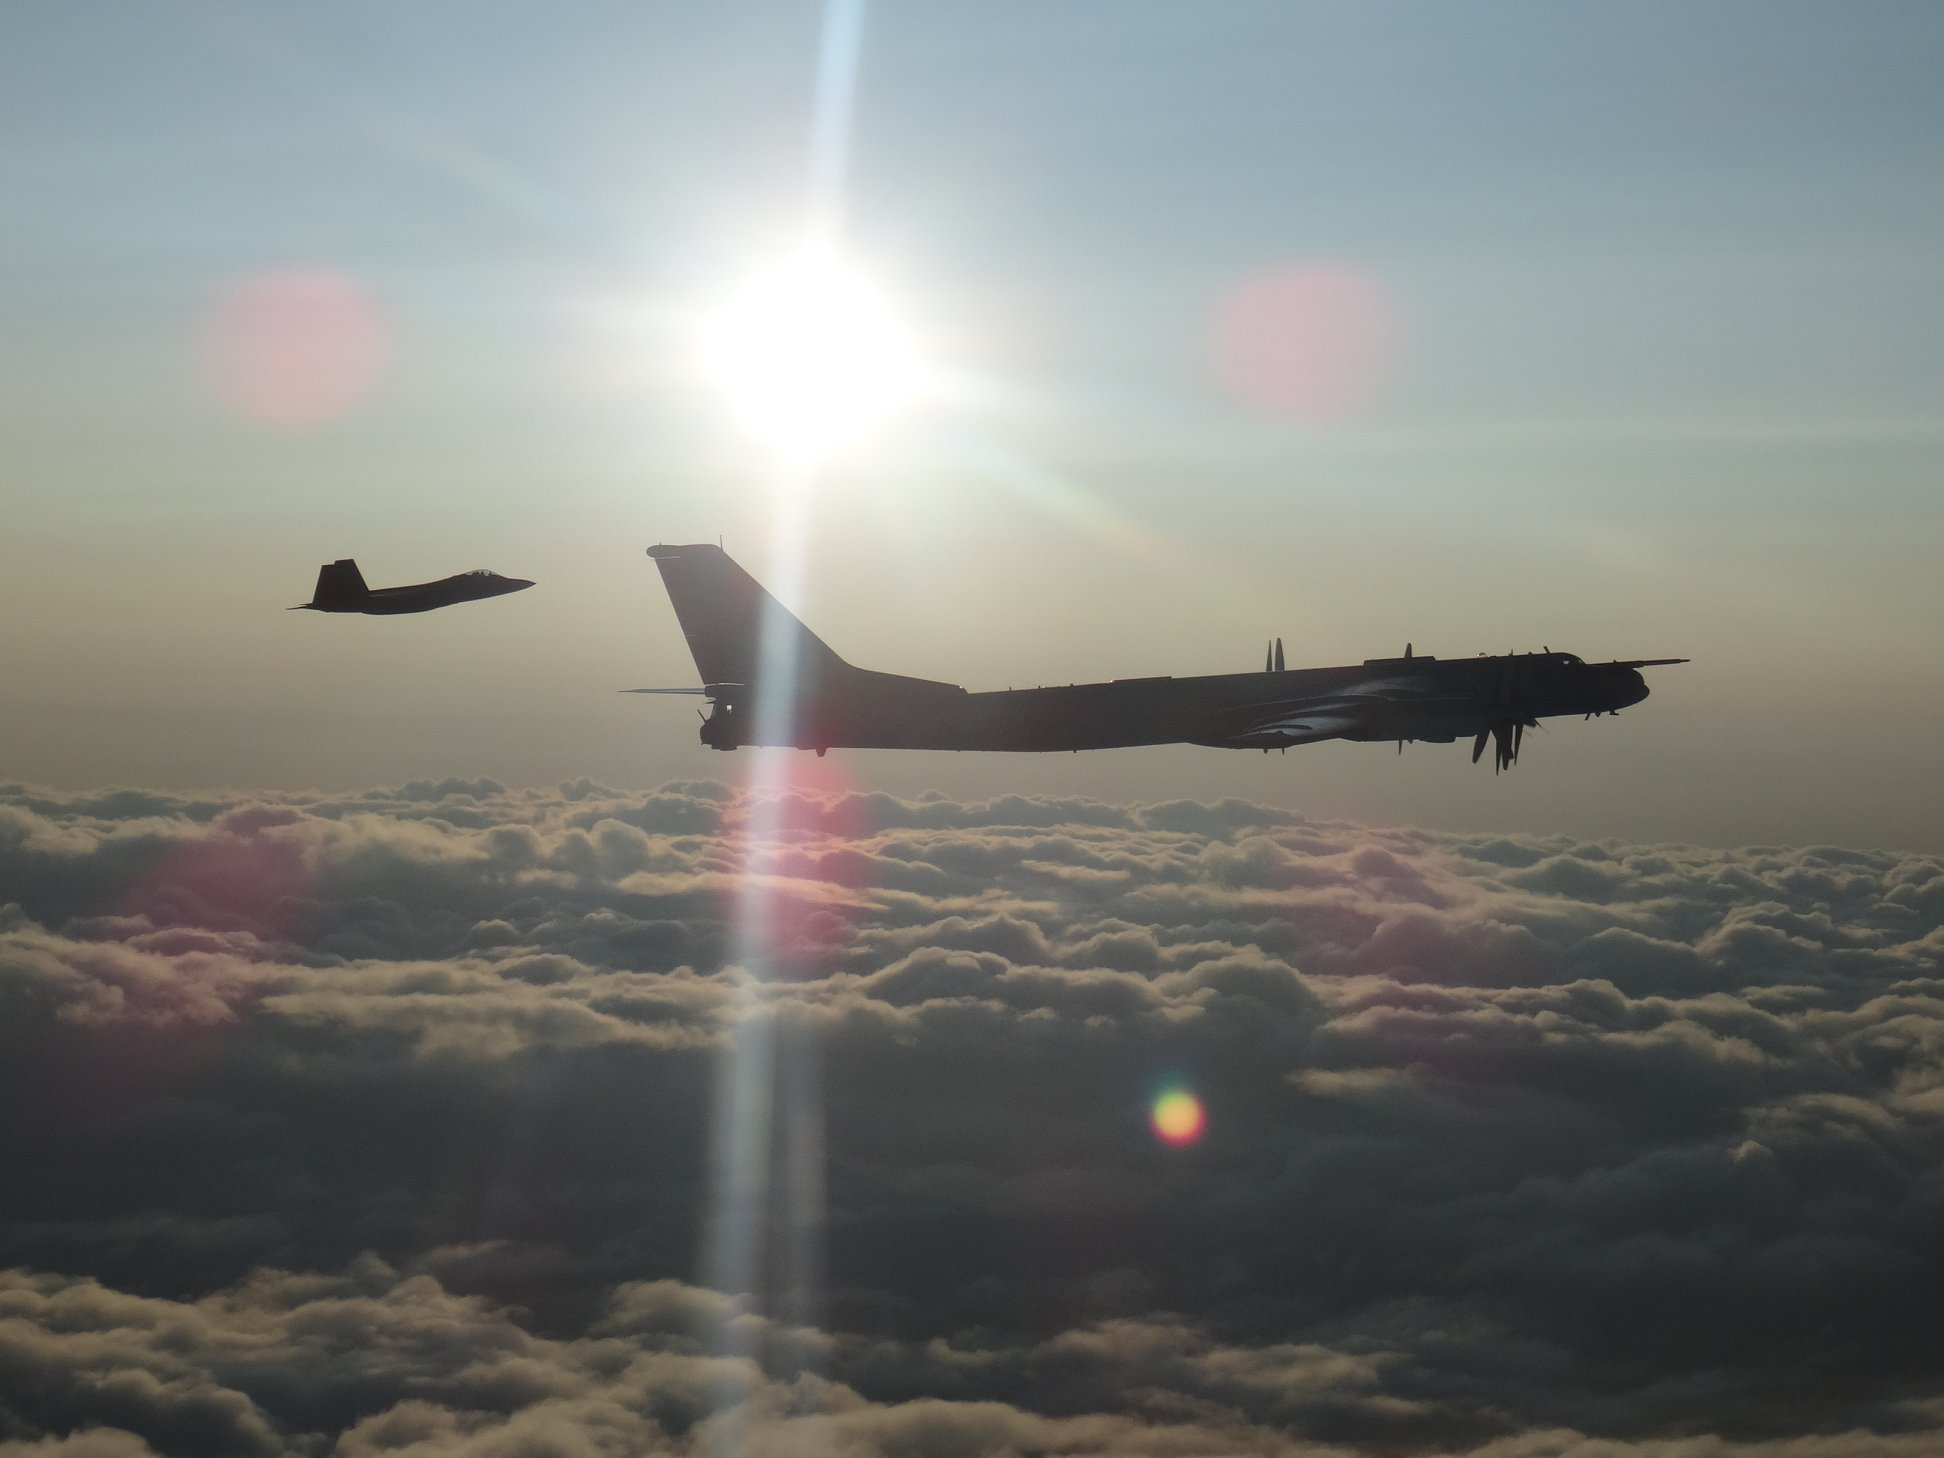 Russian jets intercepted off Alaskan coast by U.S. & Canadian forces